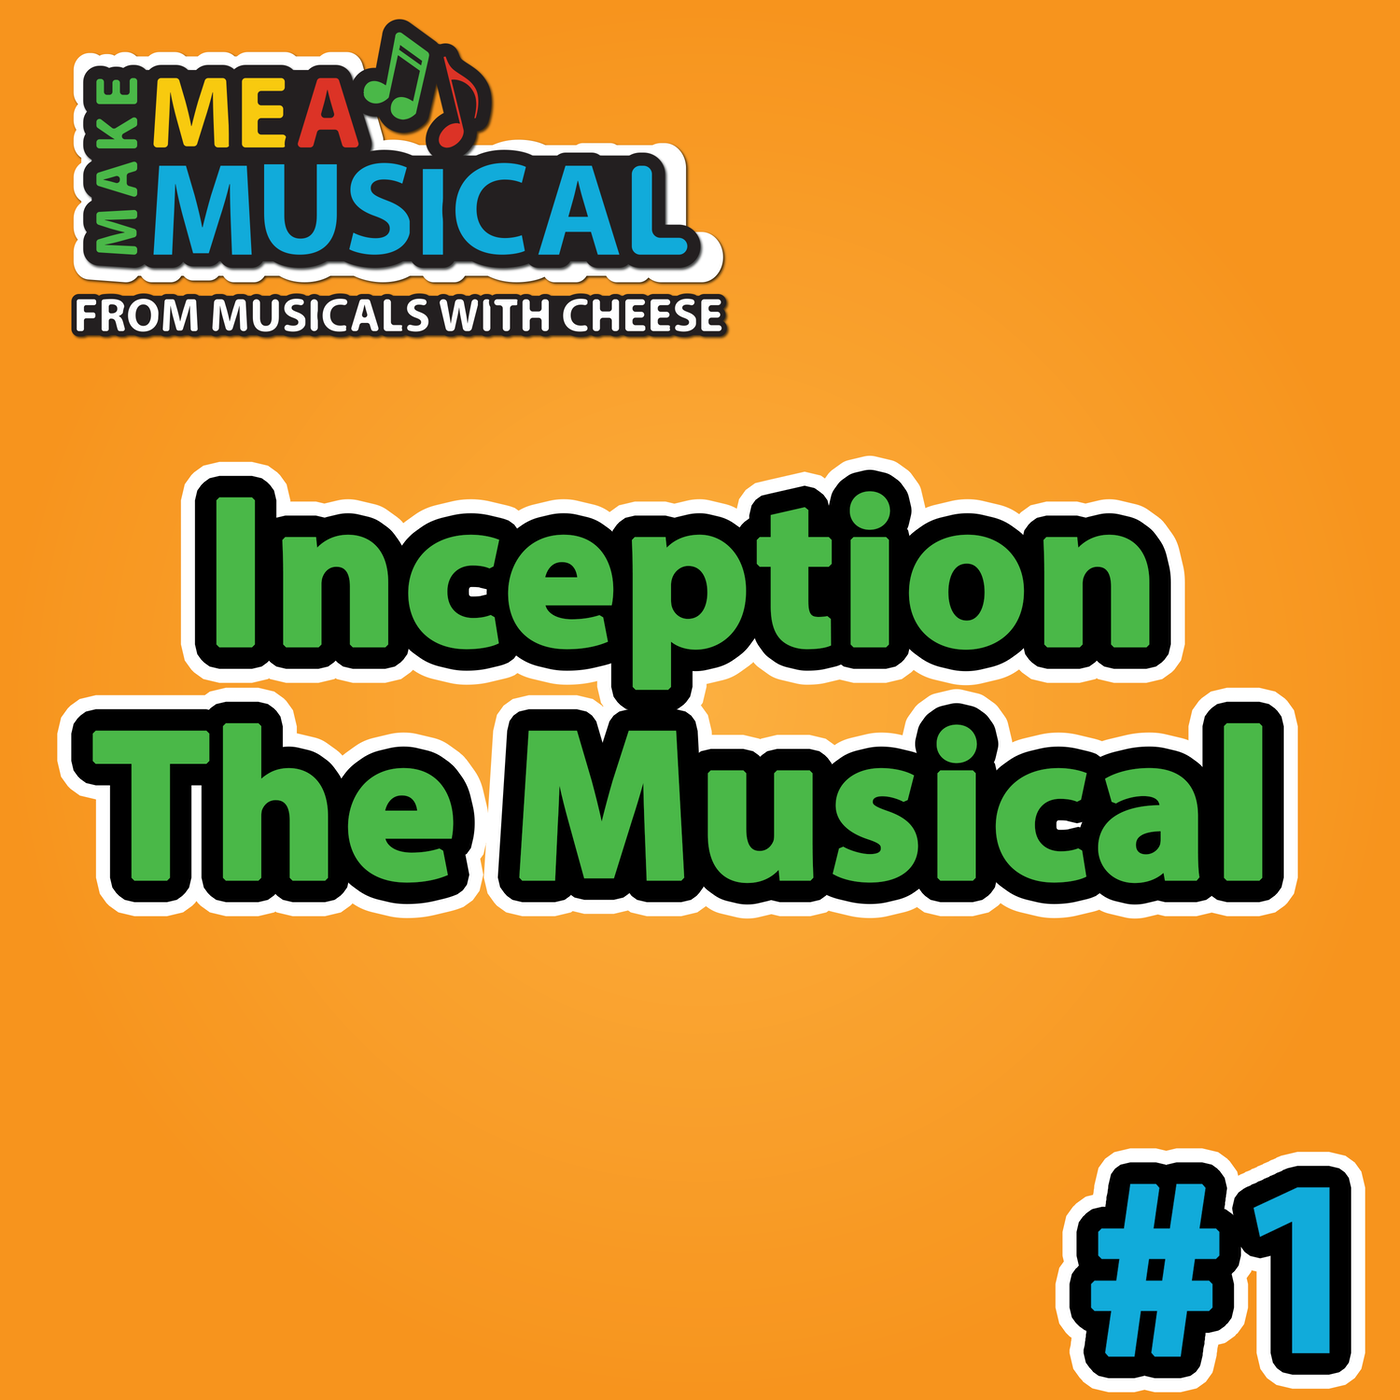 Inception the Musical - Make me a Musical #1